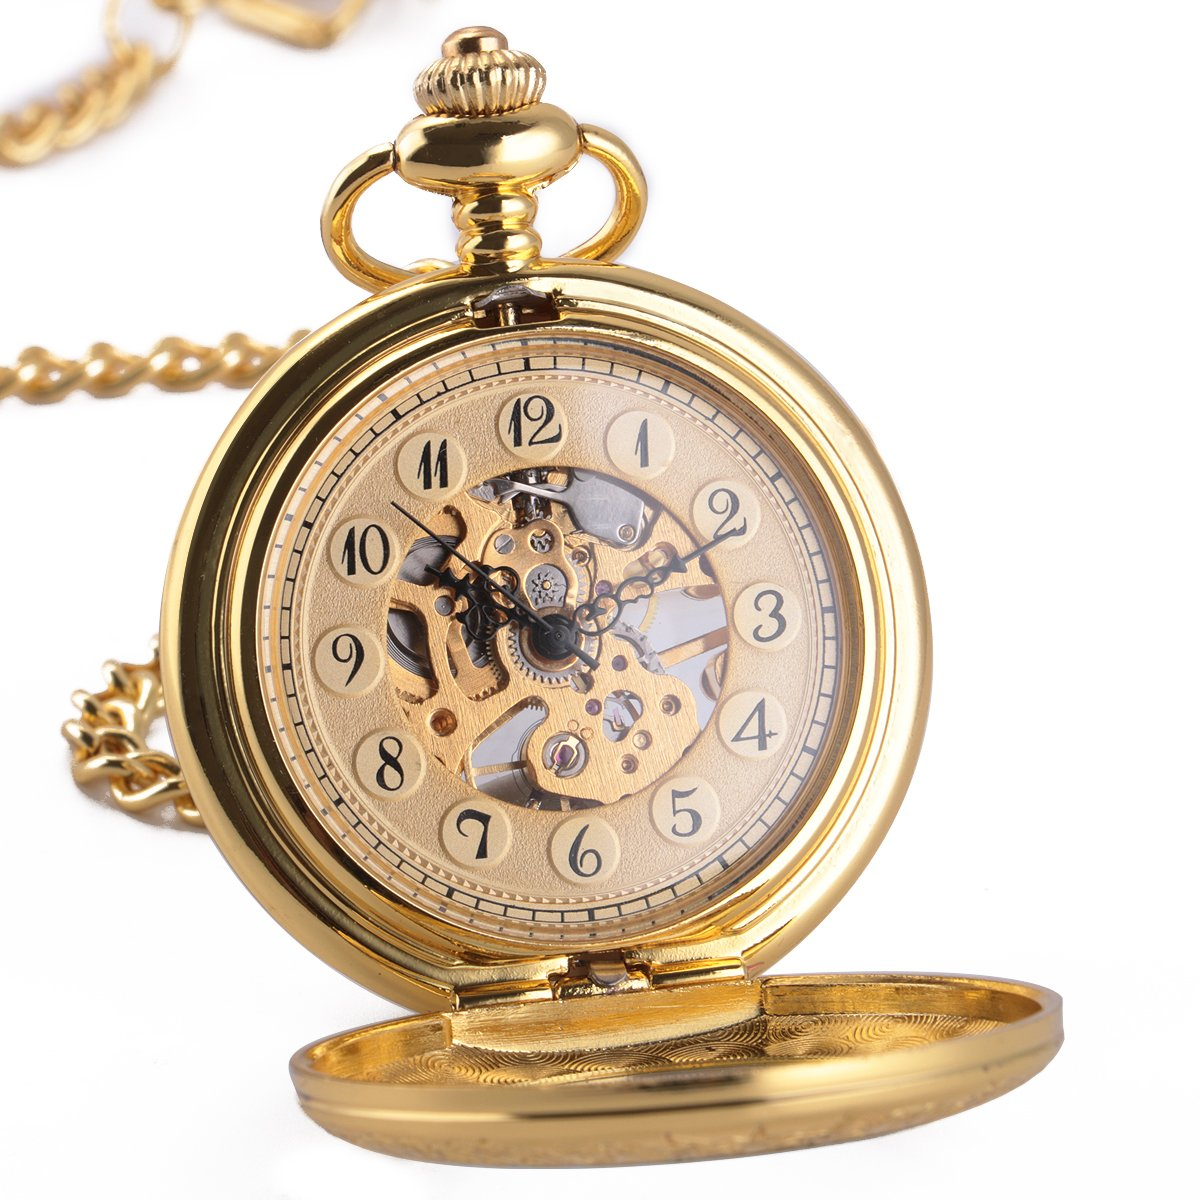 ManChDa Mechanical Pocket Watch for Men Women Special Magnifier Half Hunter Engraved Case Arabic Numerals with Chain + Gift Box